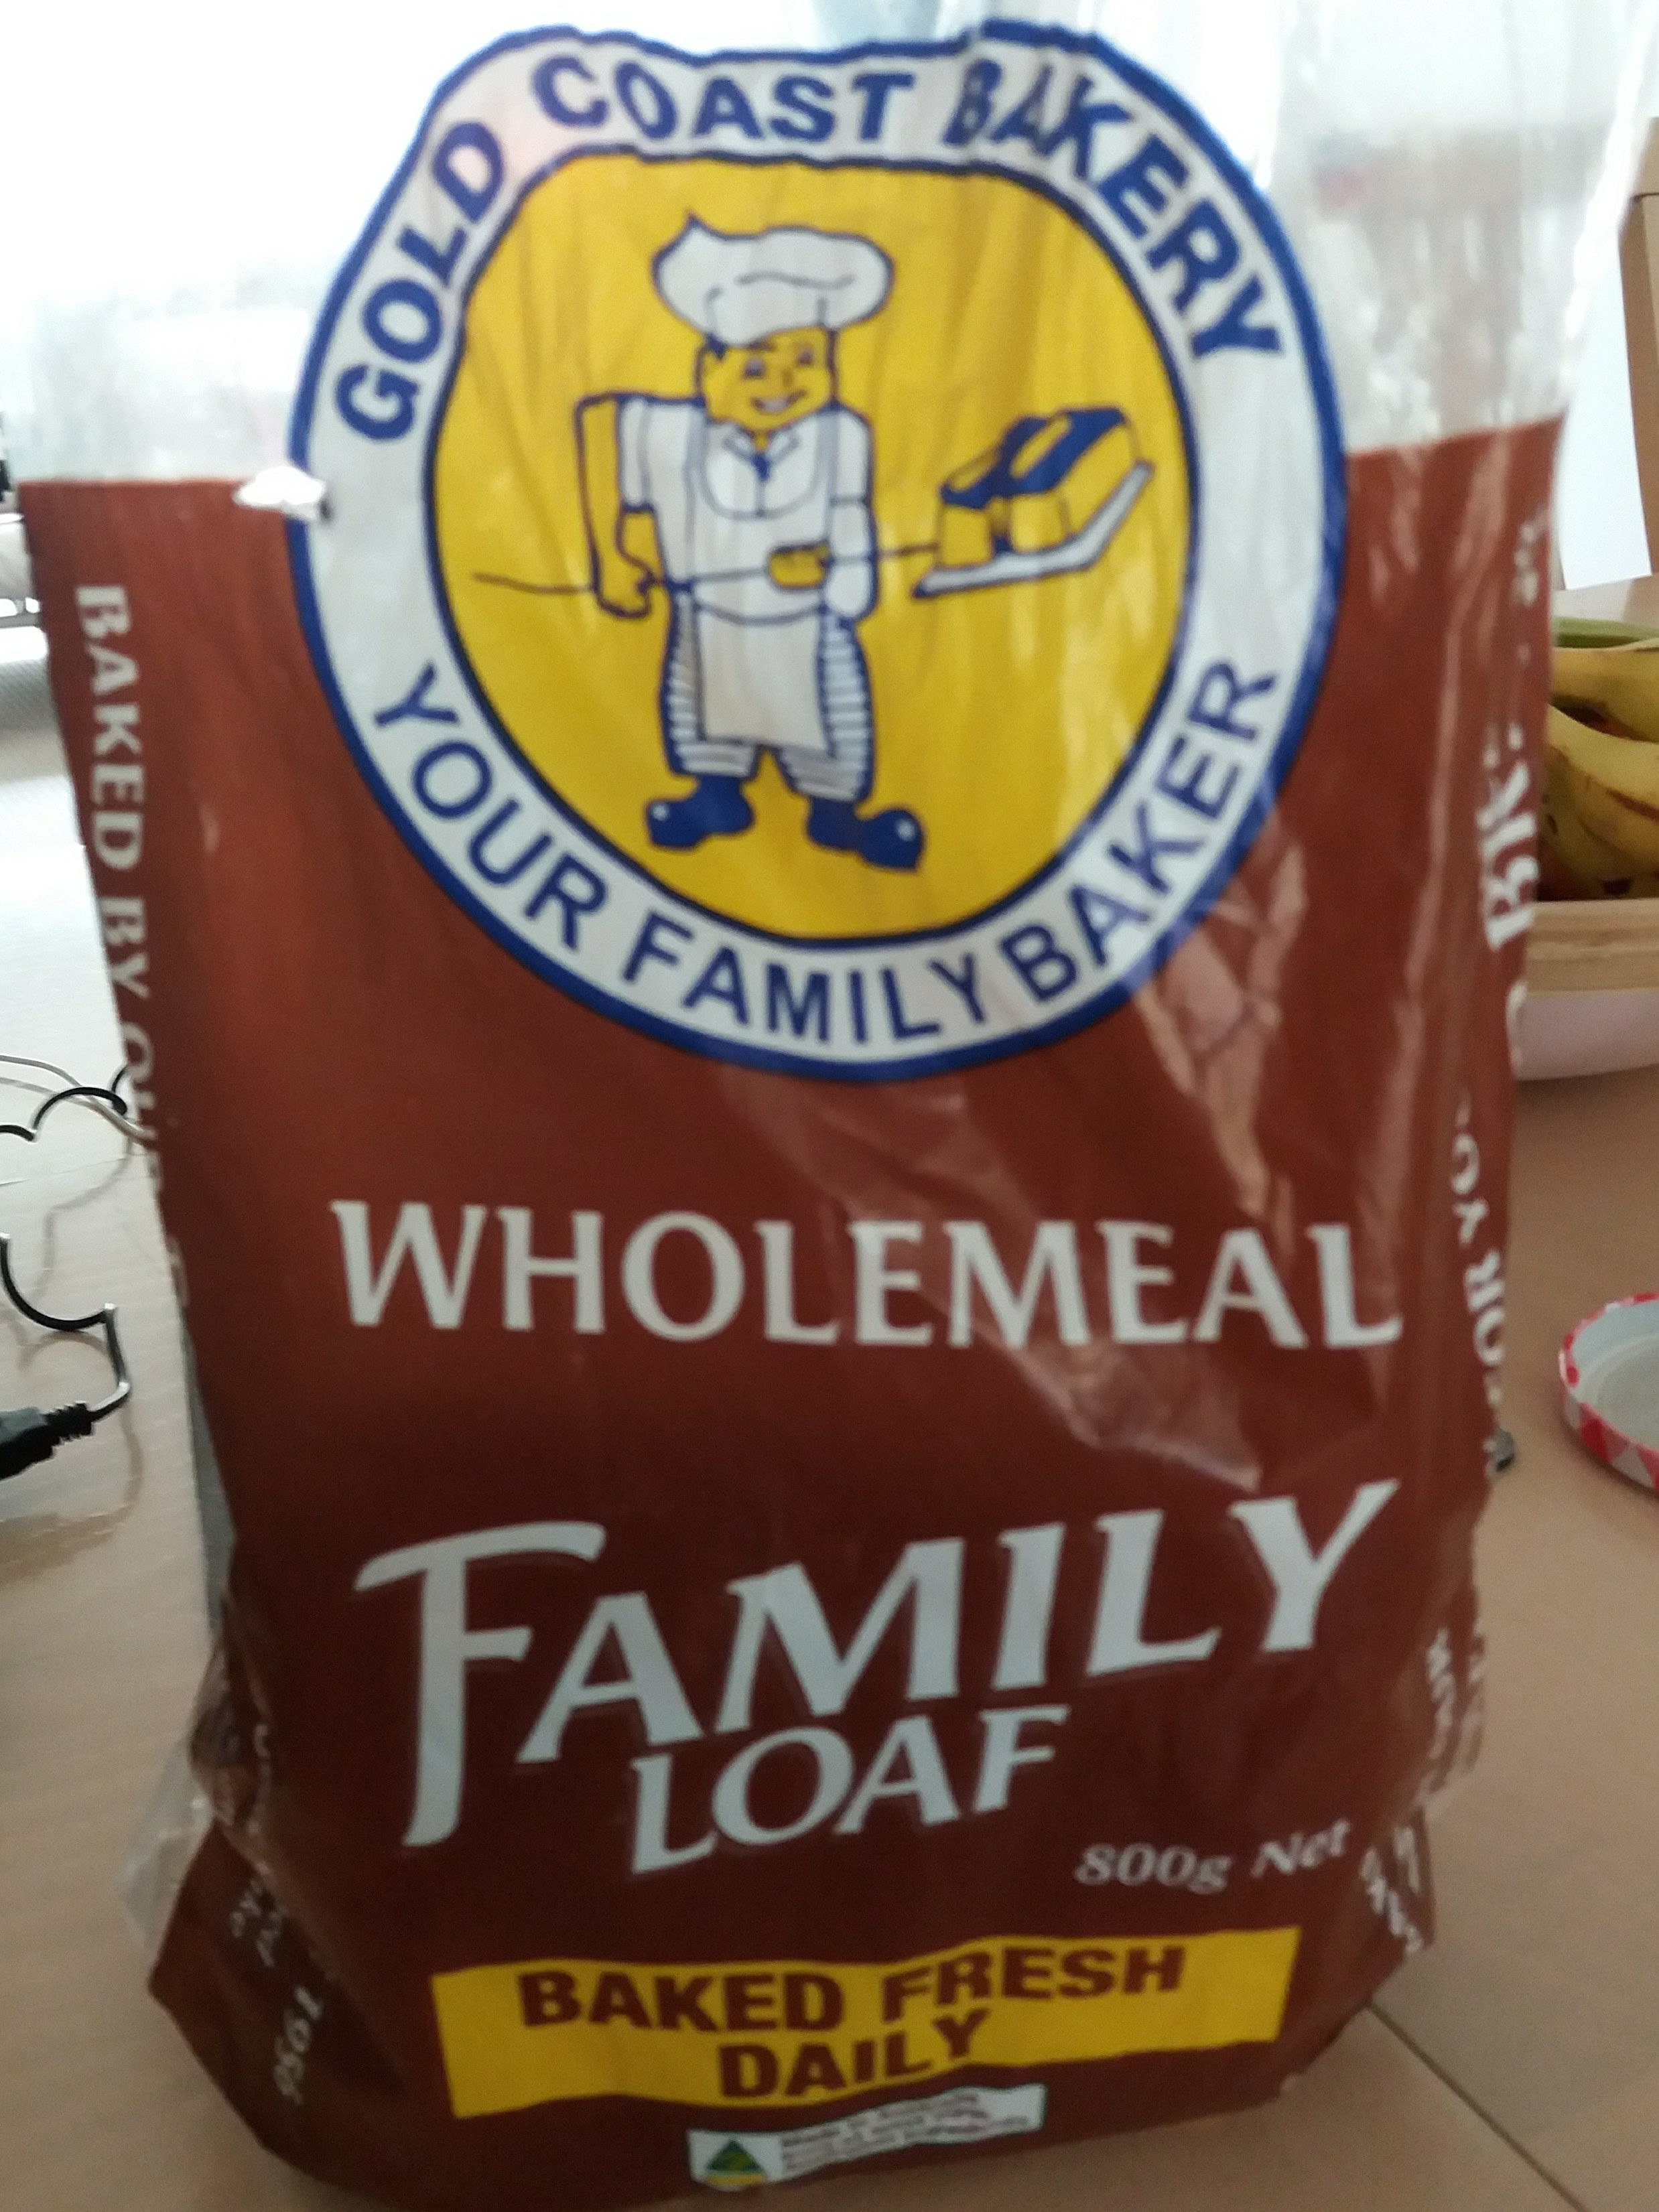 Wholemeal Family Loaf - Product - en